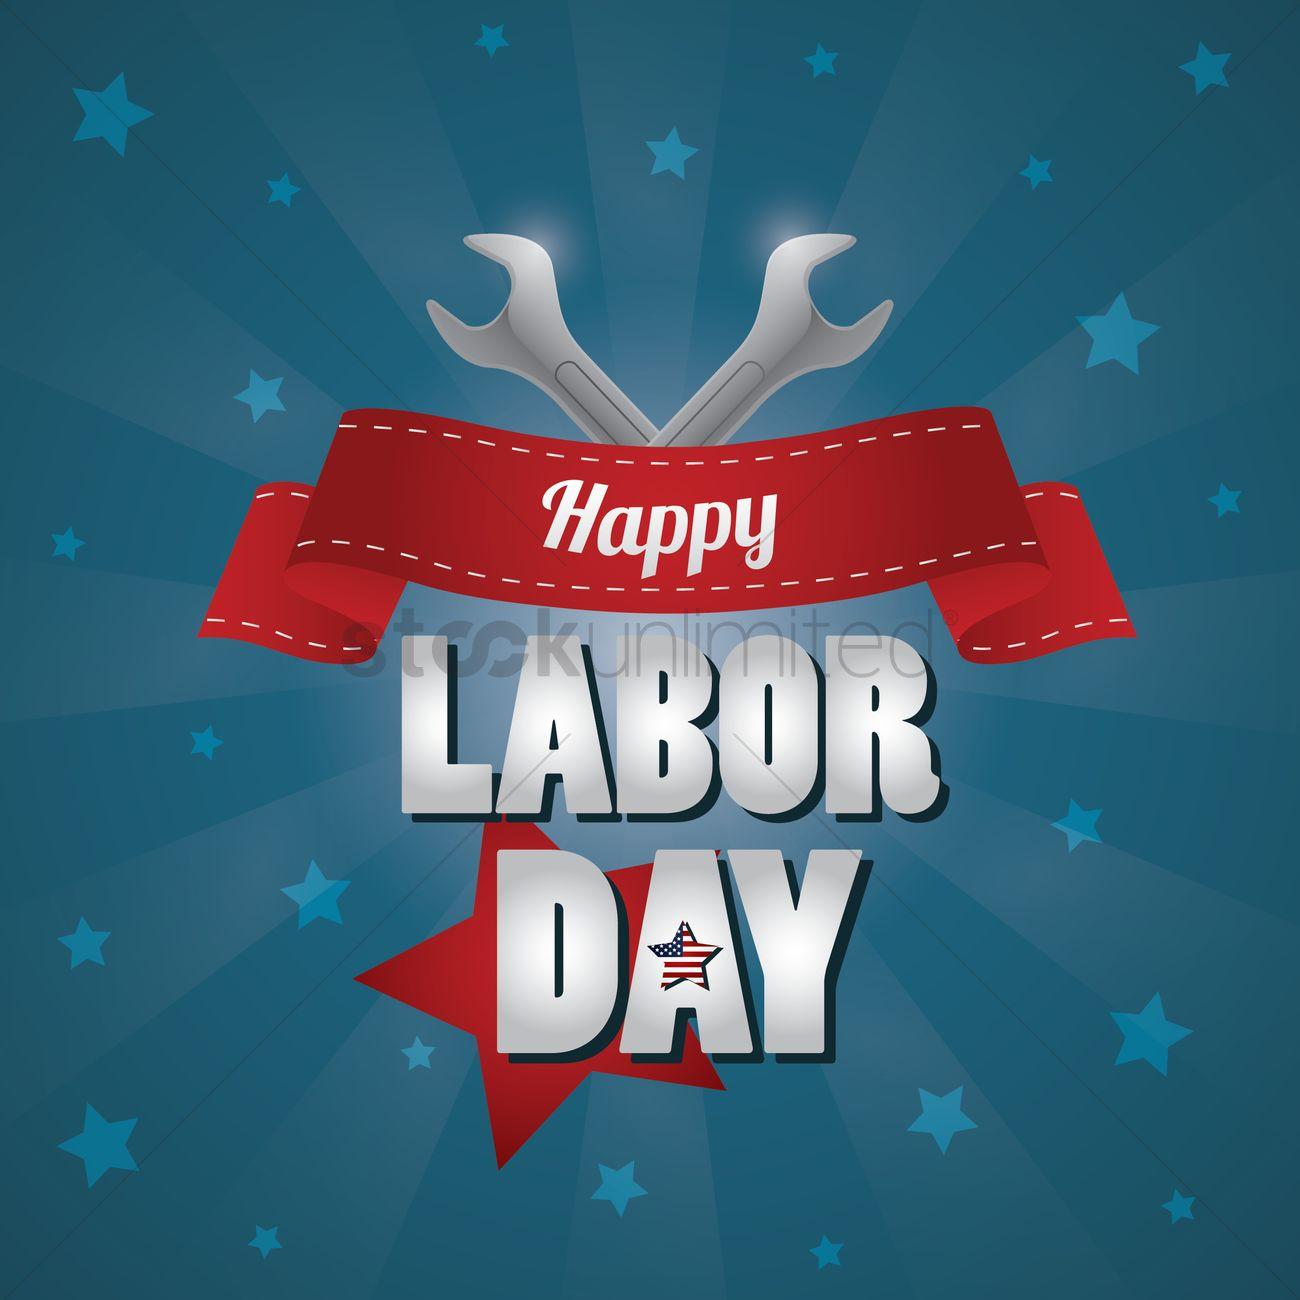 Labor day poster Vector Image - 1530470 | StockUnlimited